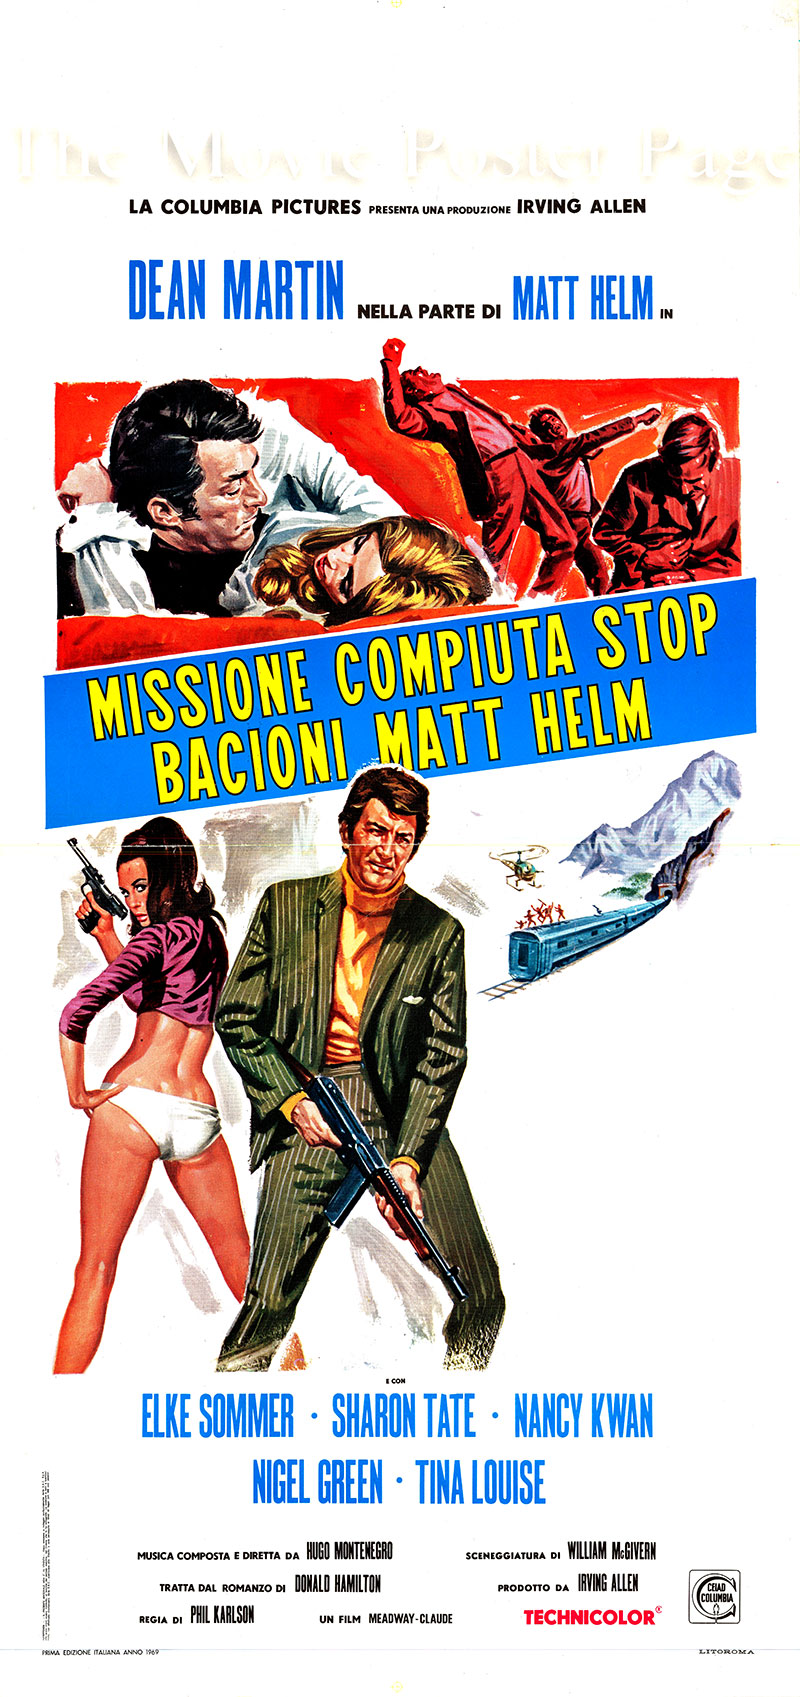 Pictured is an Italian locandina for the 1968 Phil Karlson film The Wrecking Crew starring Dean Martin as Matt Helm.